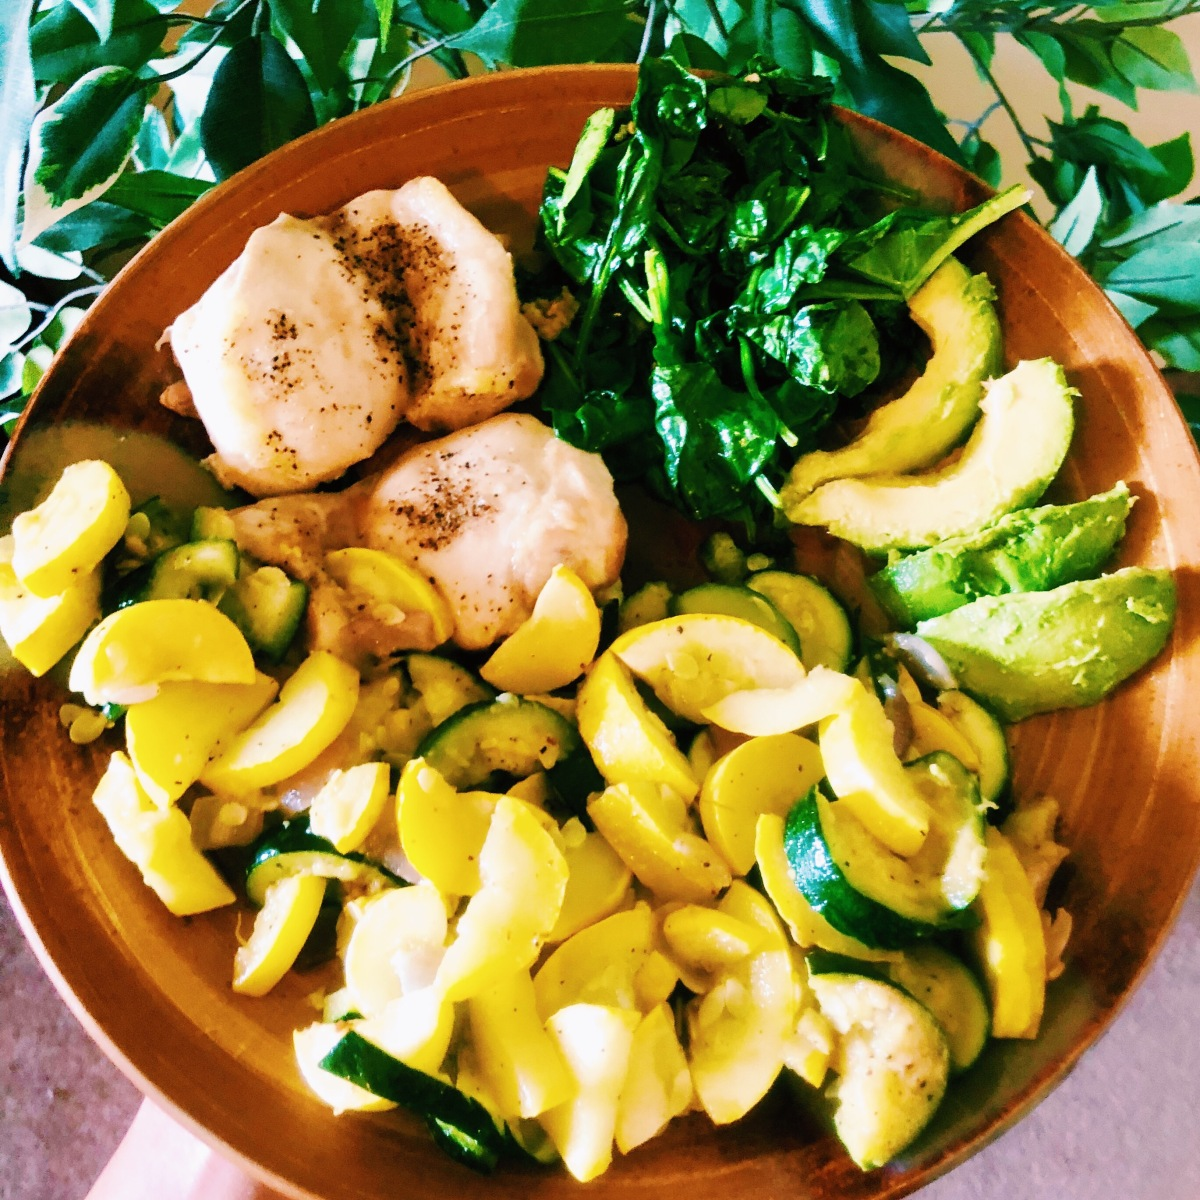 Chicken with Squash, Spinach, and Avocado